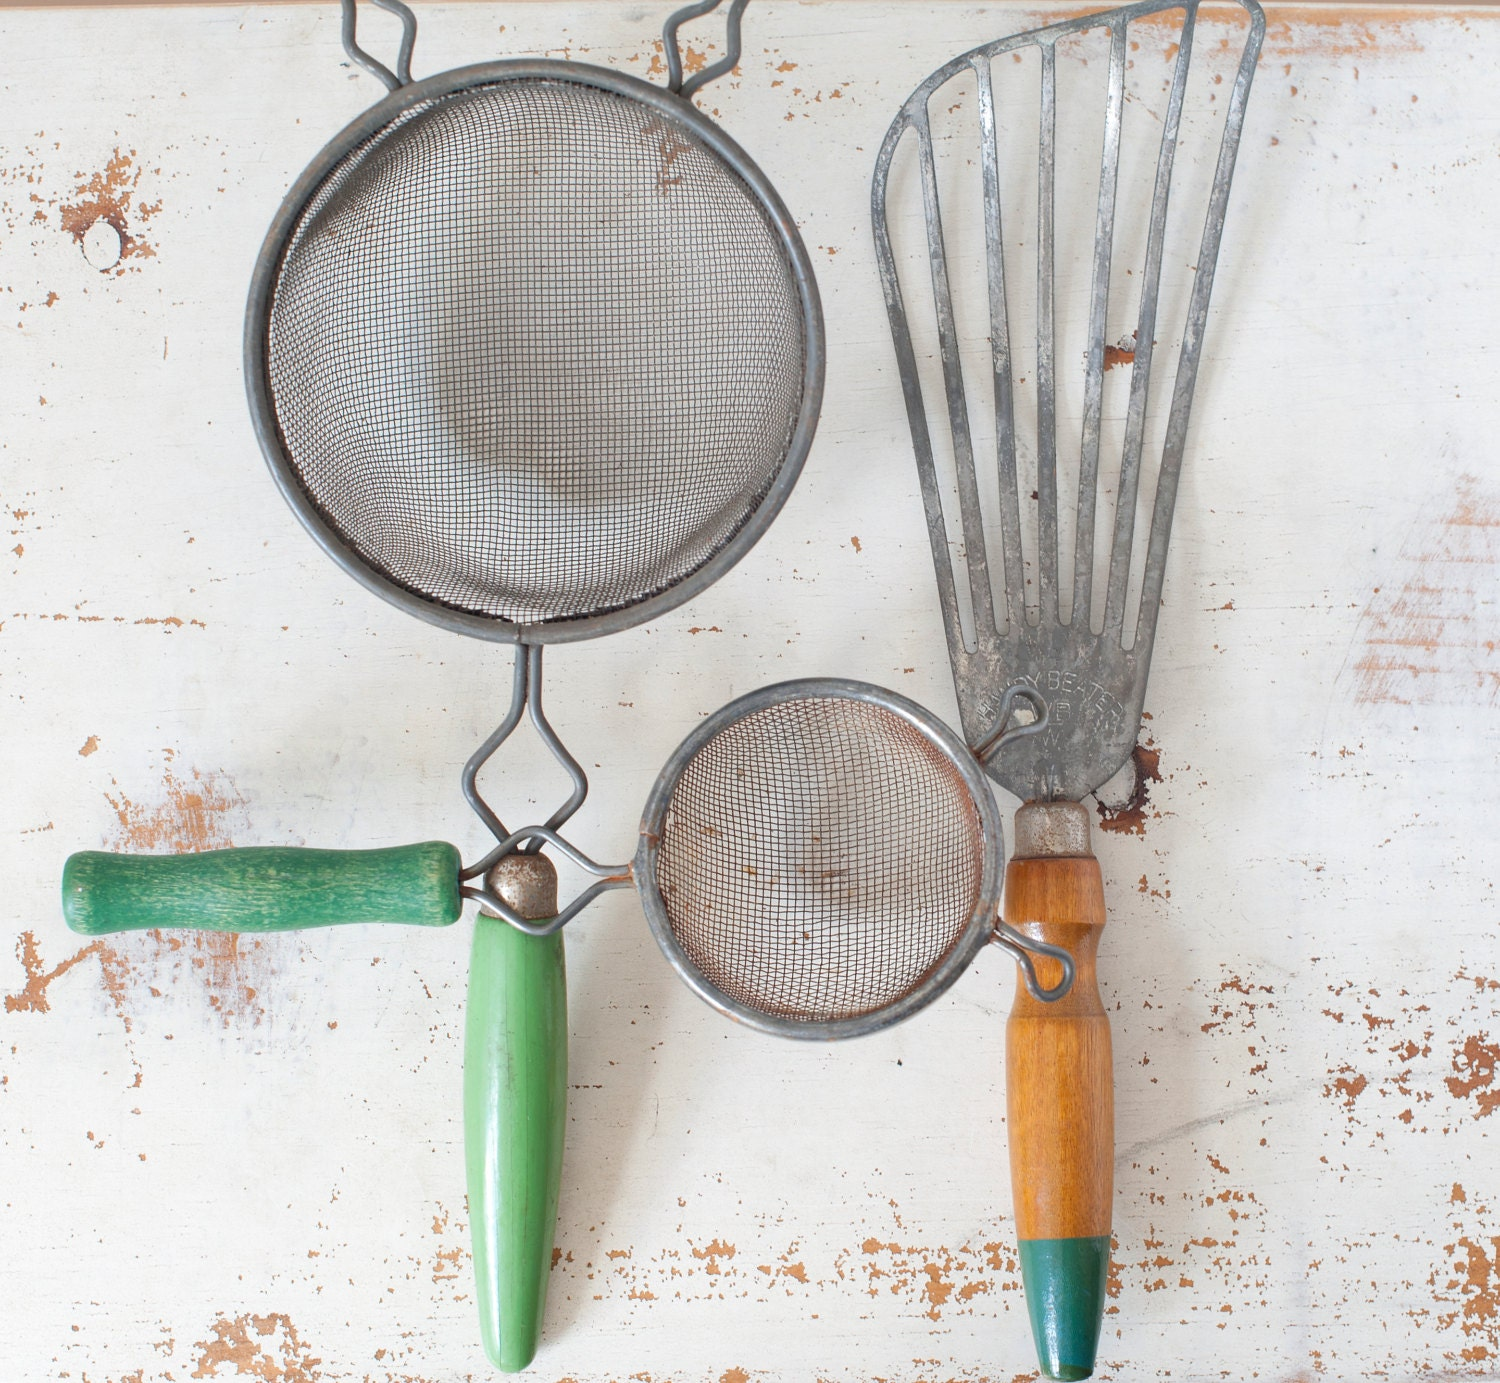 Vintage Kitchen Utensils Retro Kitchen Utensils Green